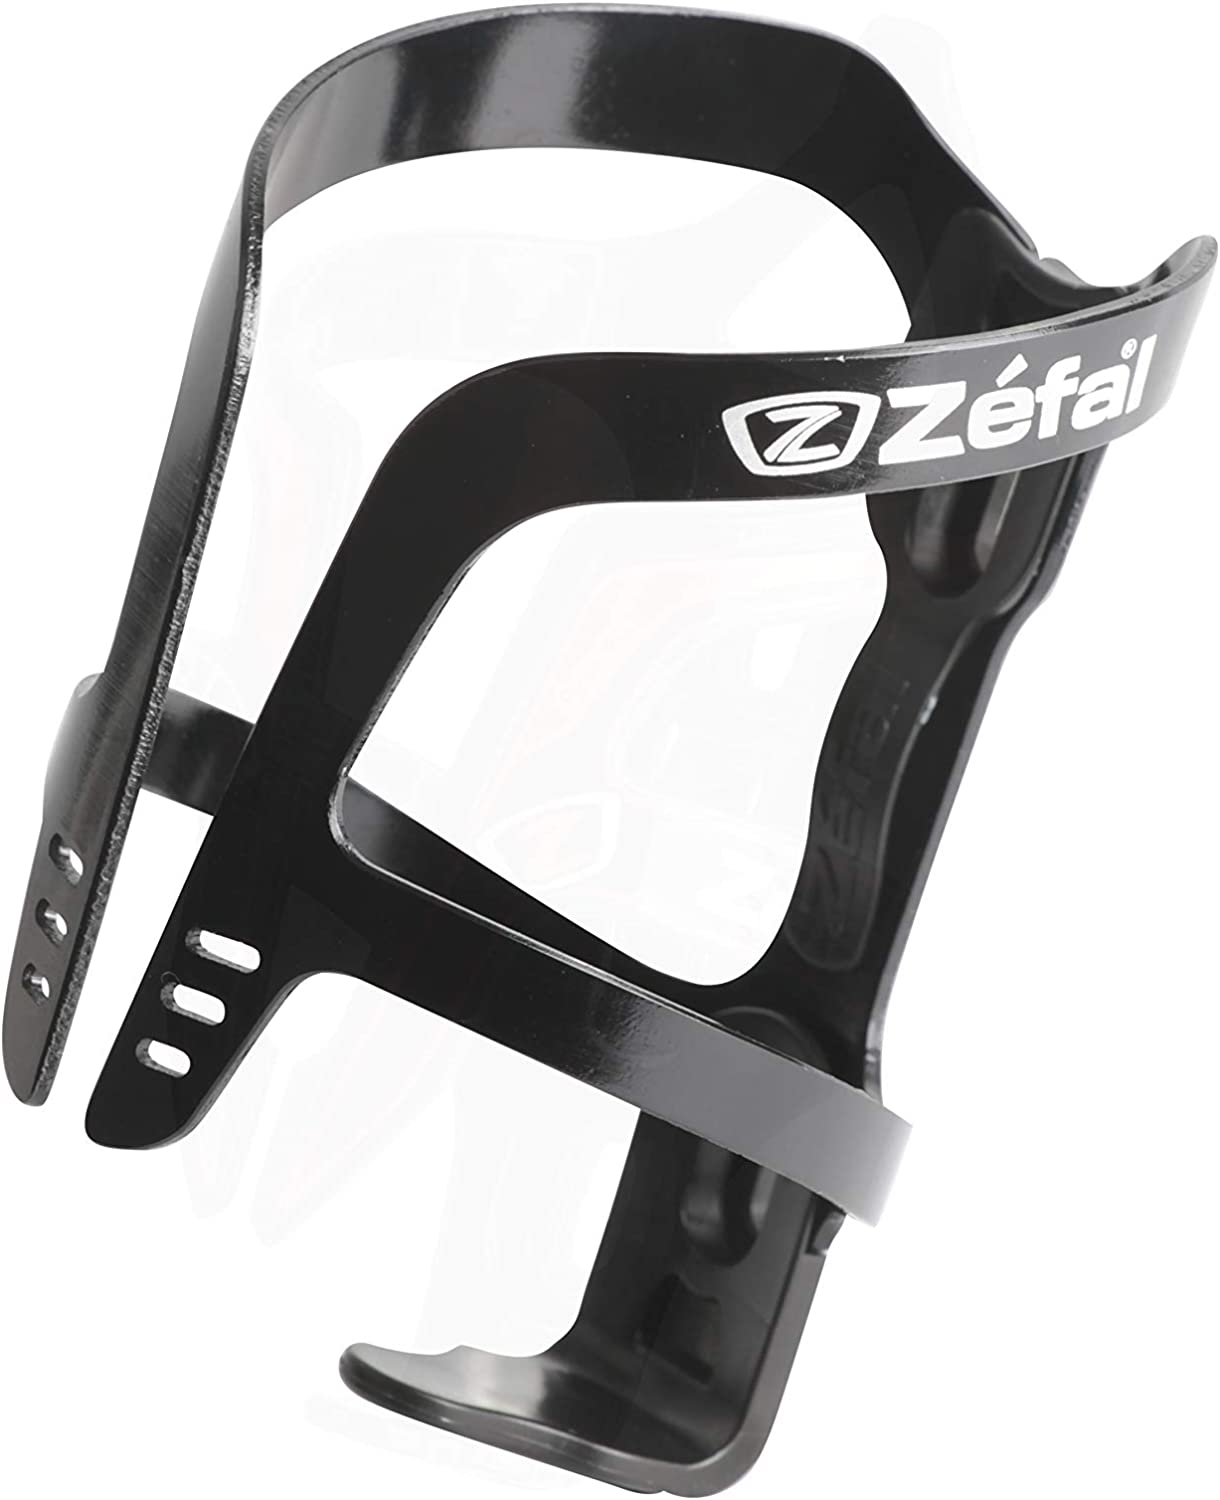 Zefal Pulse B2 Drinking Bottle Cages for Bicycle MTB Road